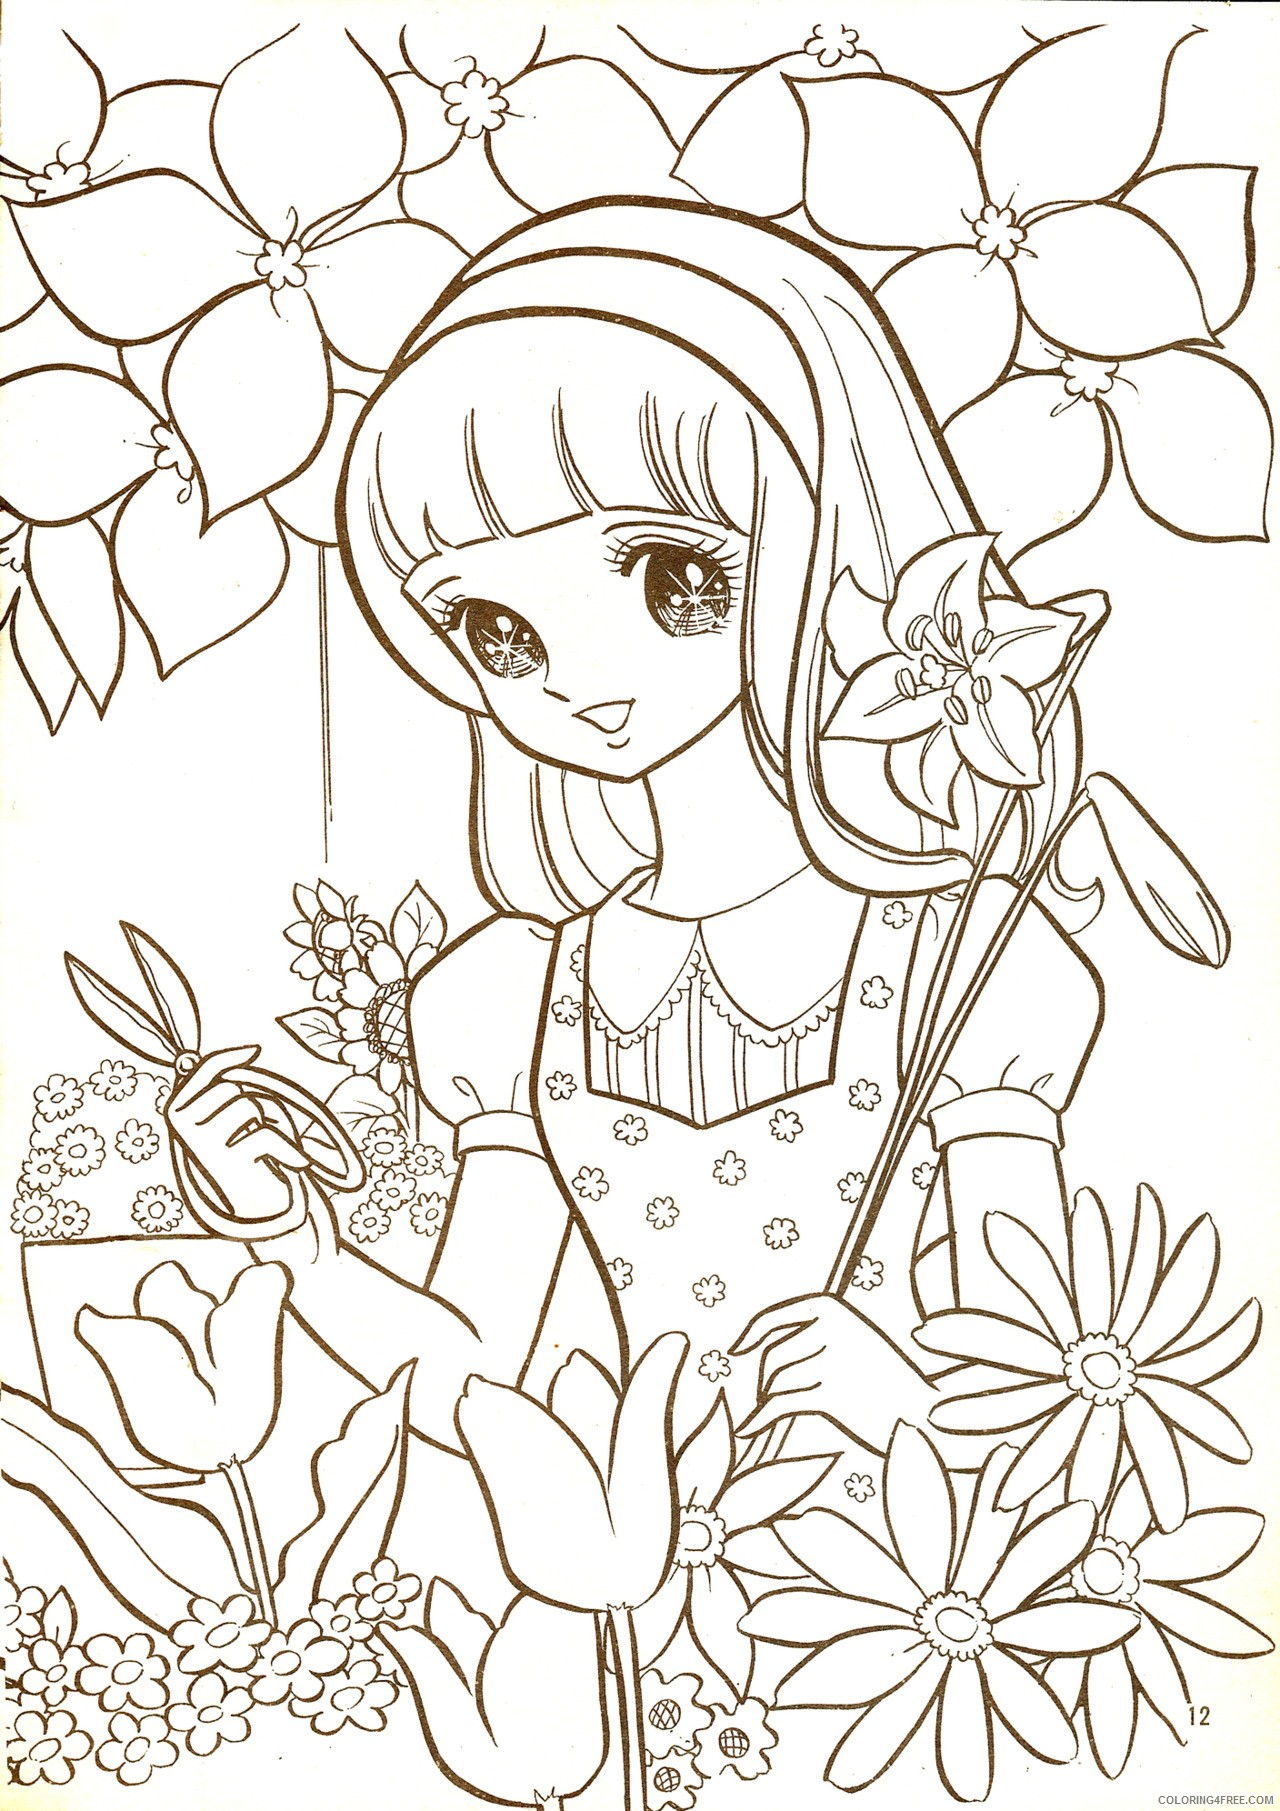 manga coloring pages in flower garden Coloring4free